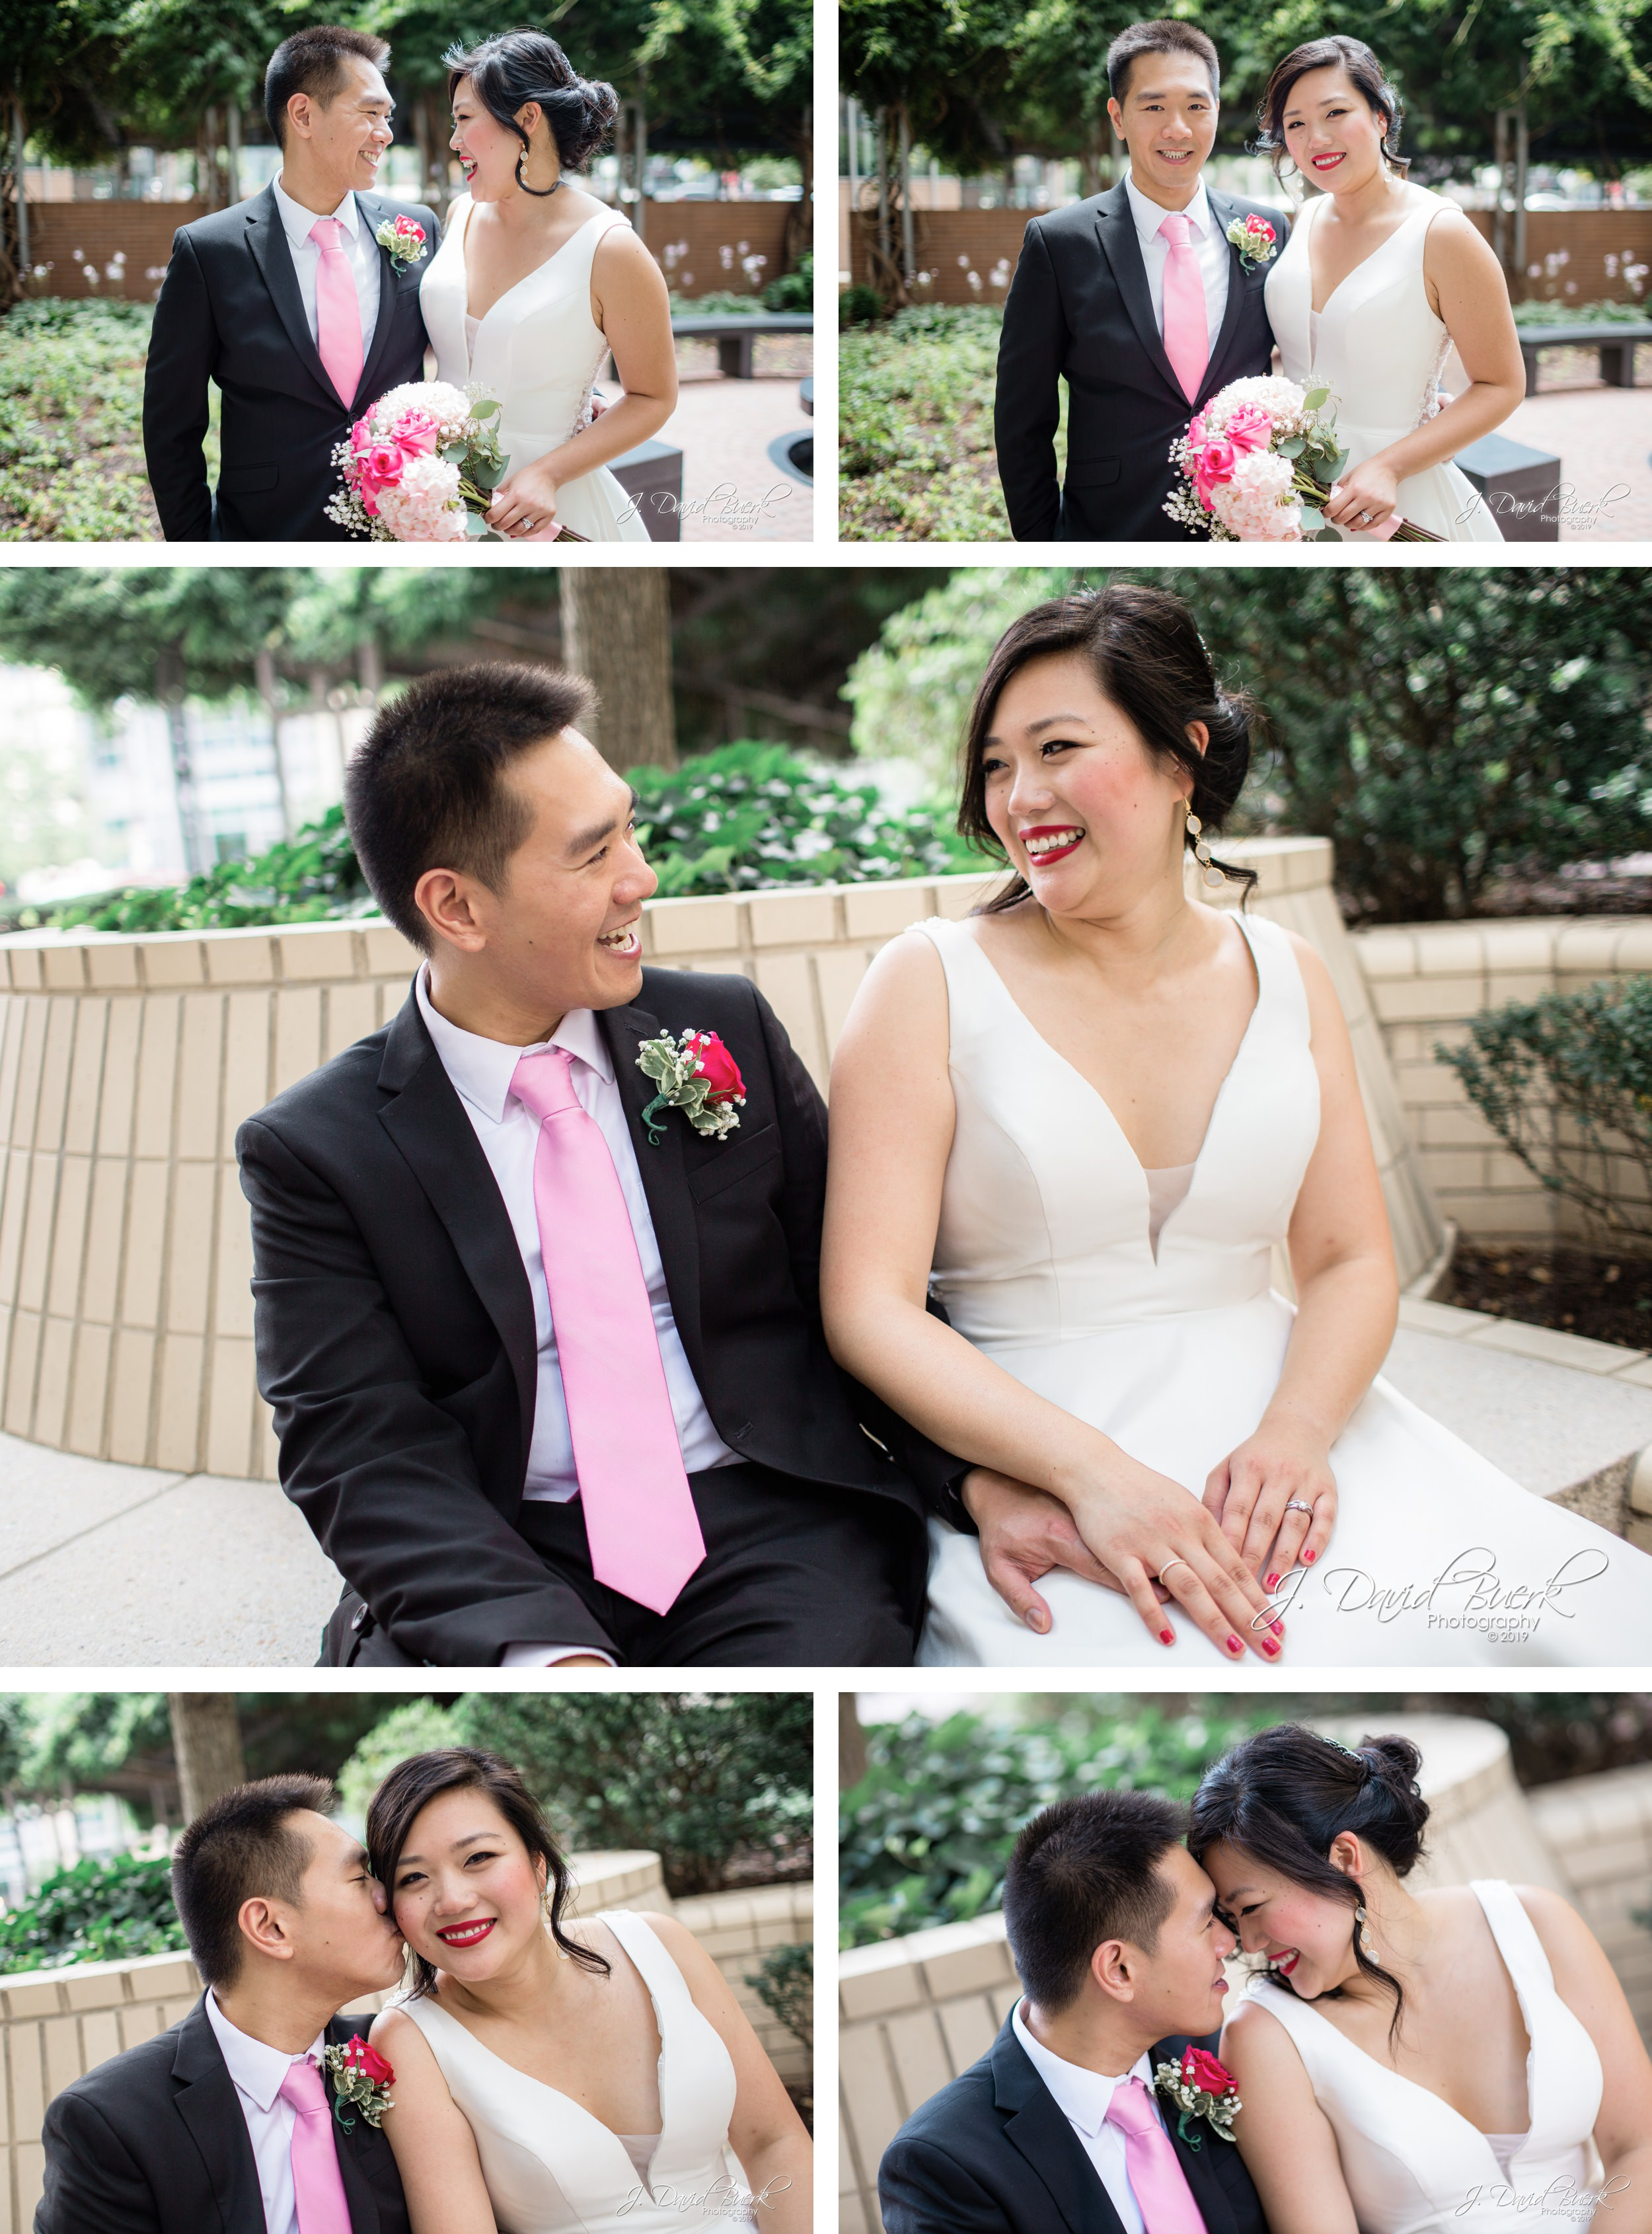 20190706 - David and Tiffany - Married 7.jpg